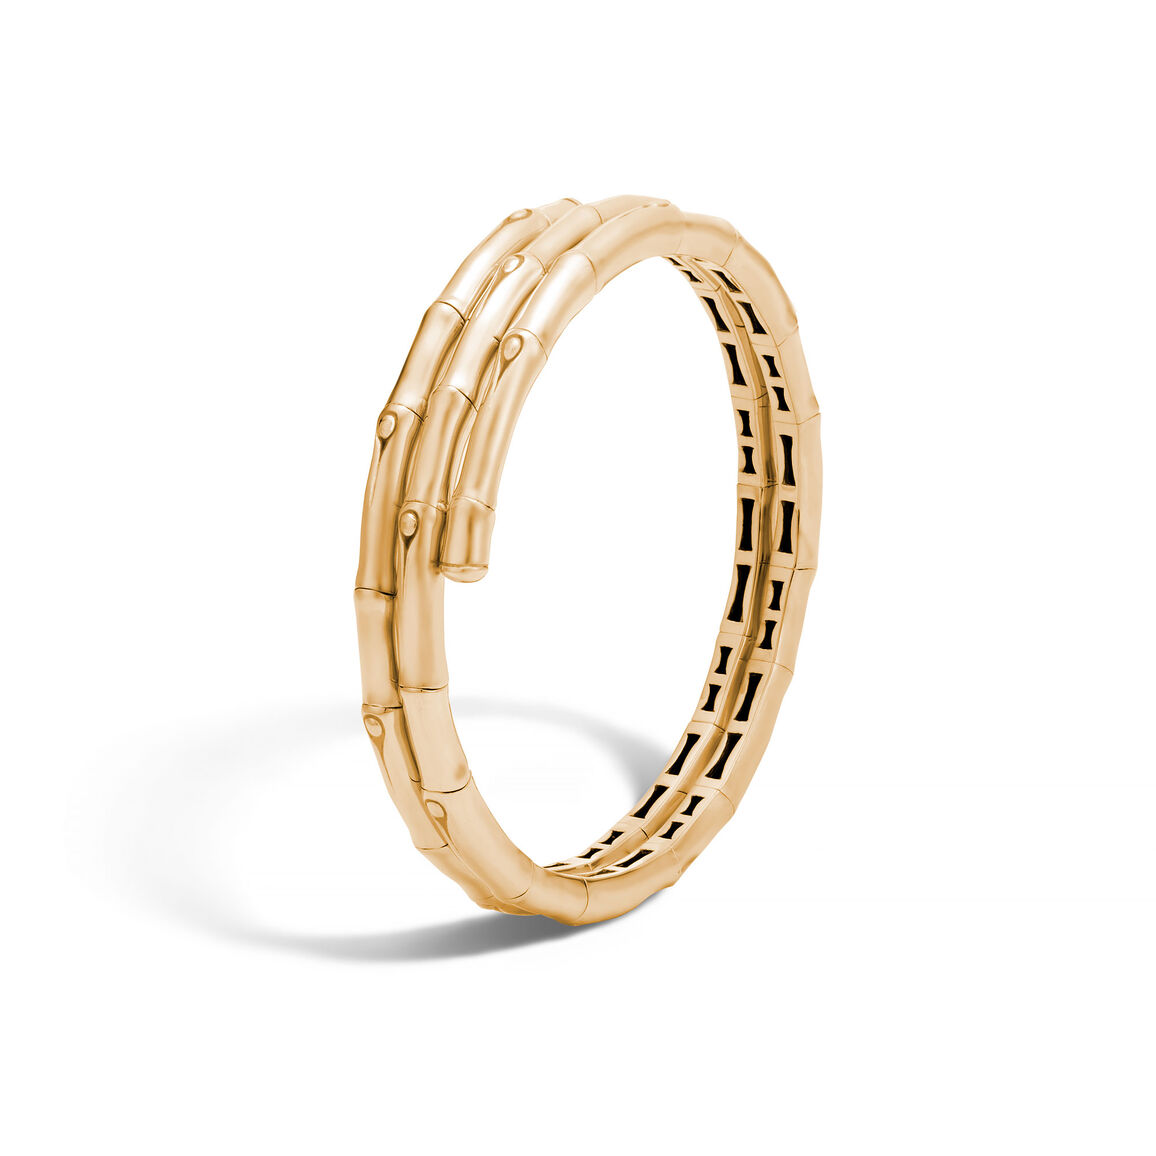 Bamboo Double Coil Bracelet in 18K Gold